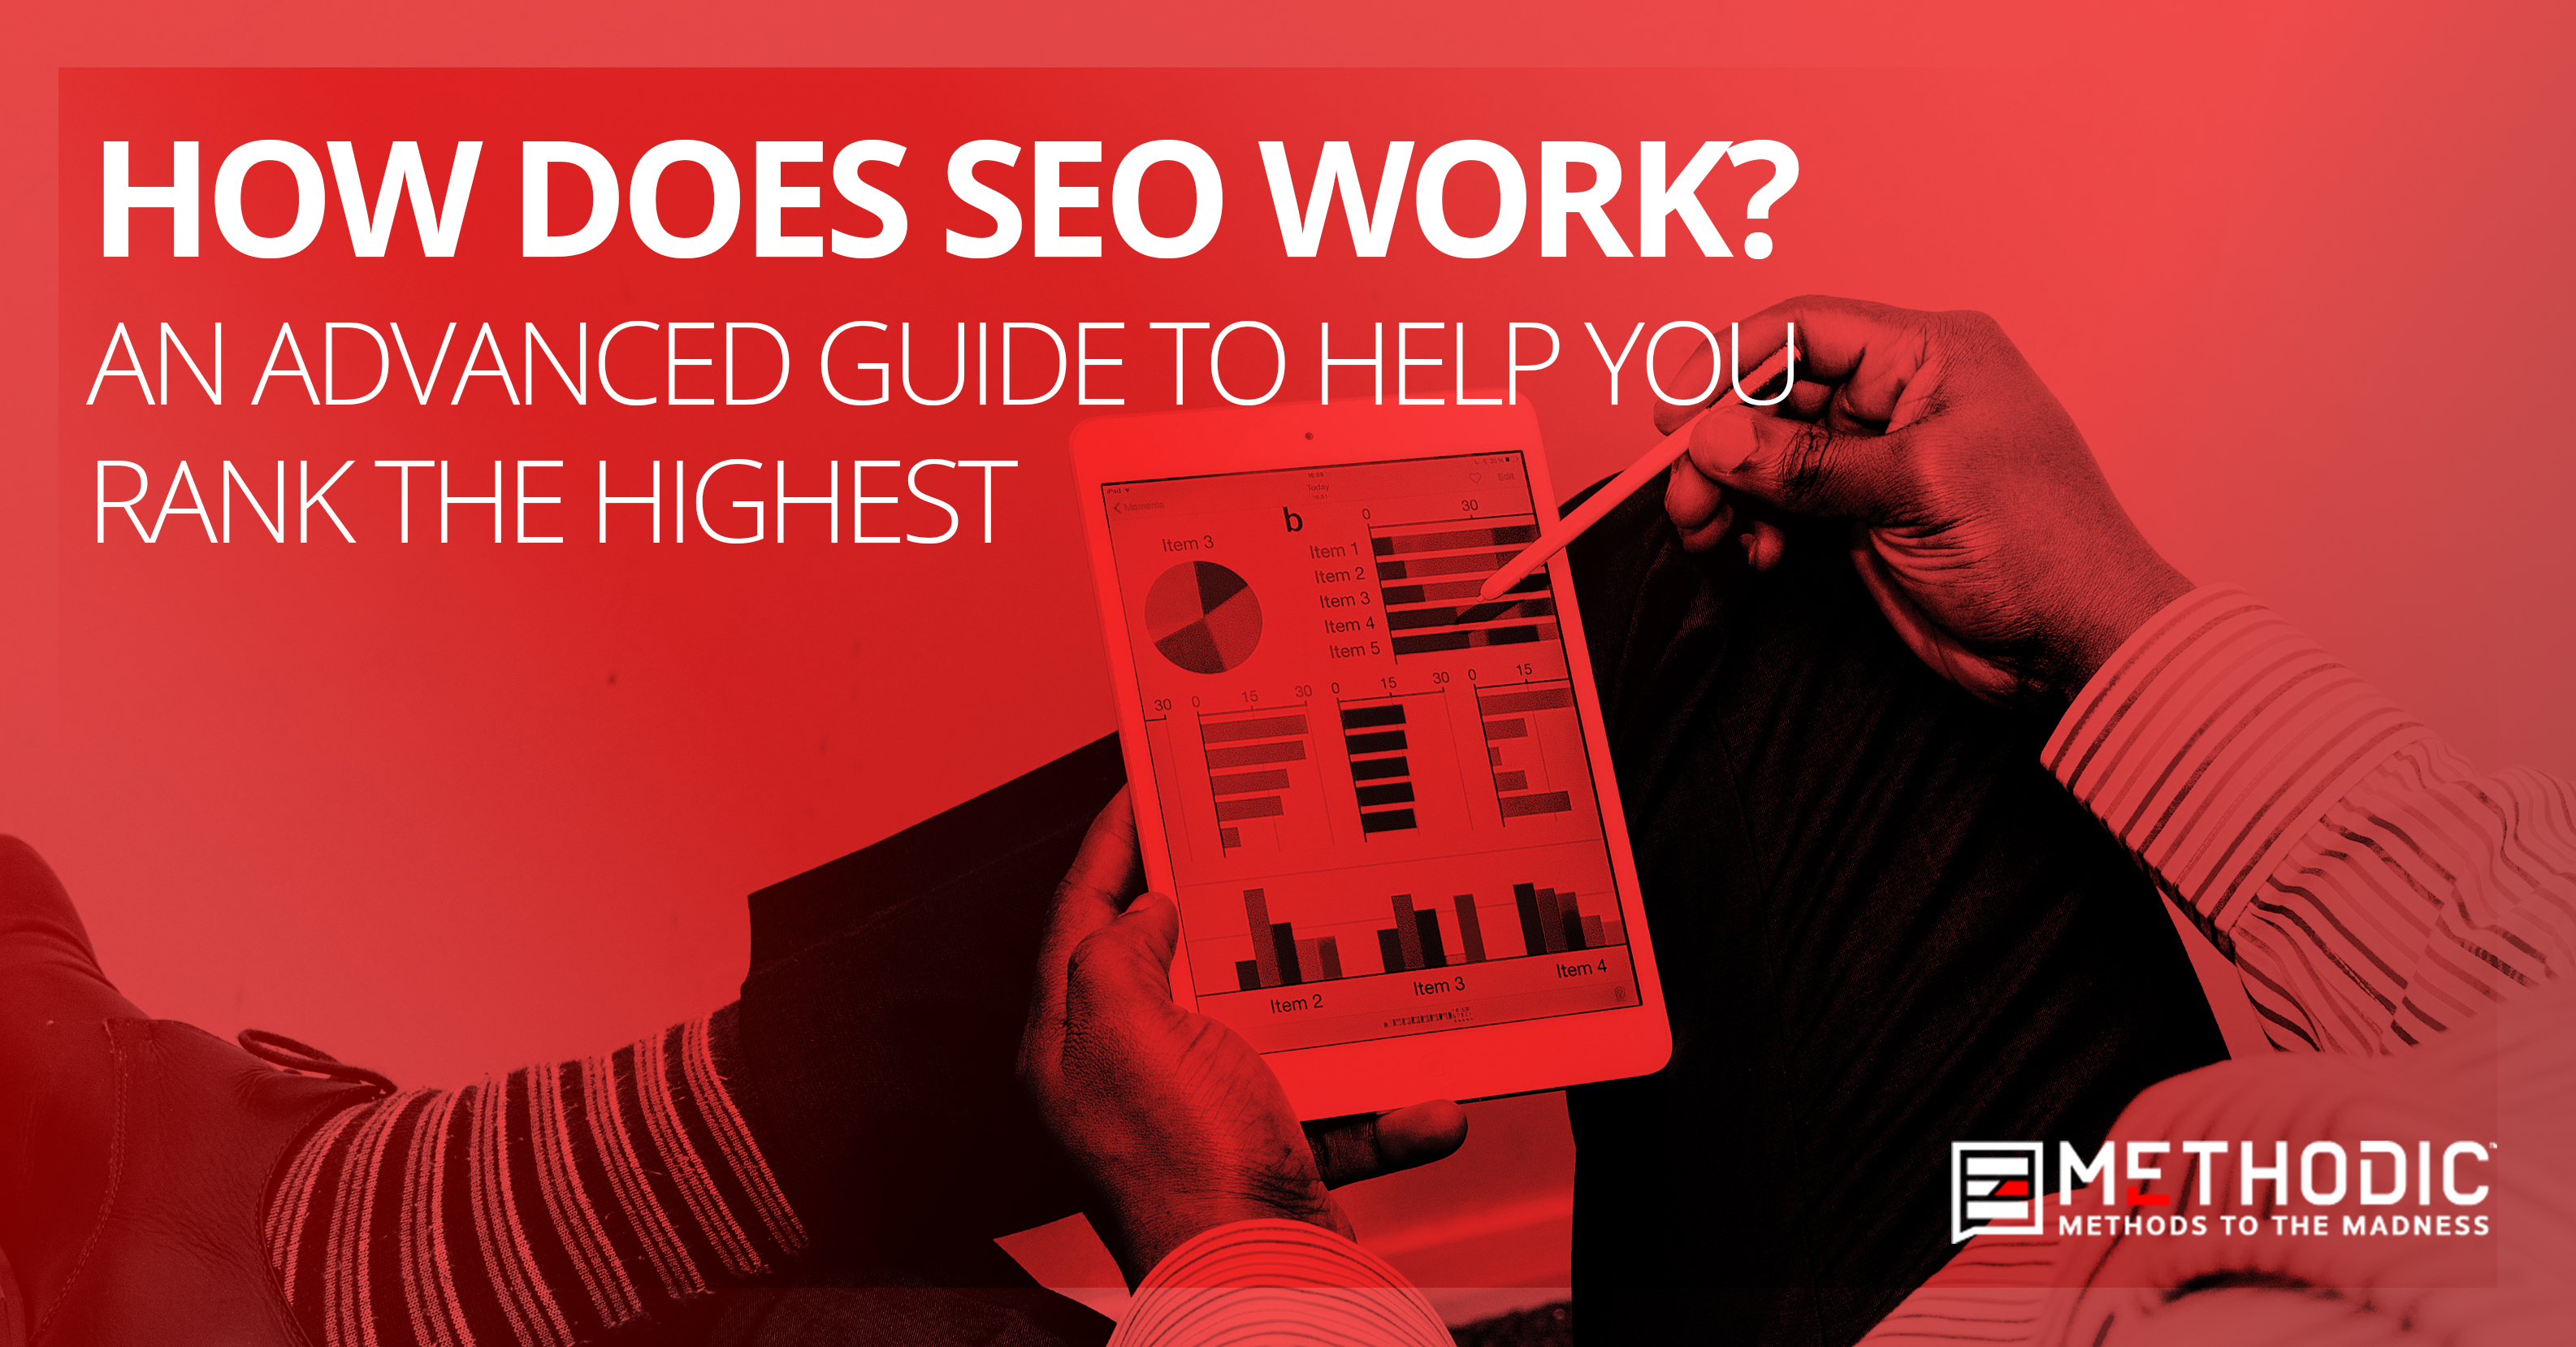 How Does Seo Work? An Advanced Guide to Help You Rank The Highest